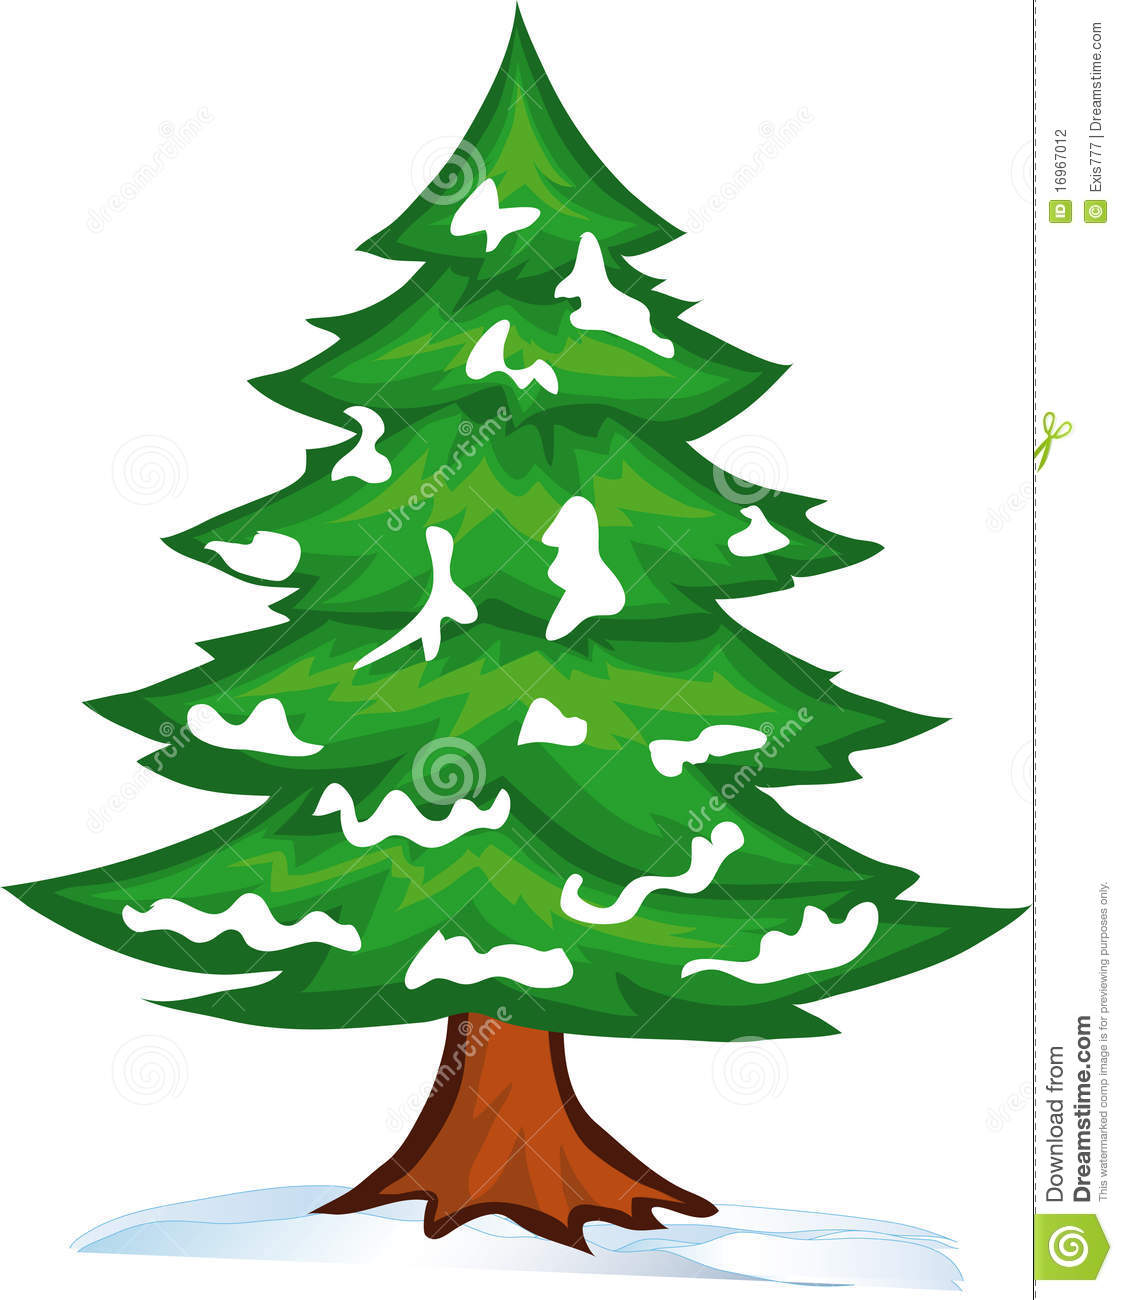 ... -trees-clipart-clipart-panda-free-clipart-images-6GdFLM-clipart.jpg